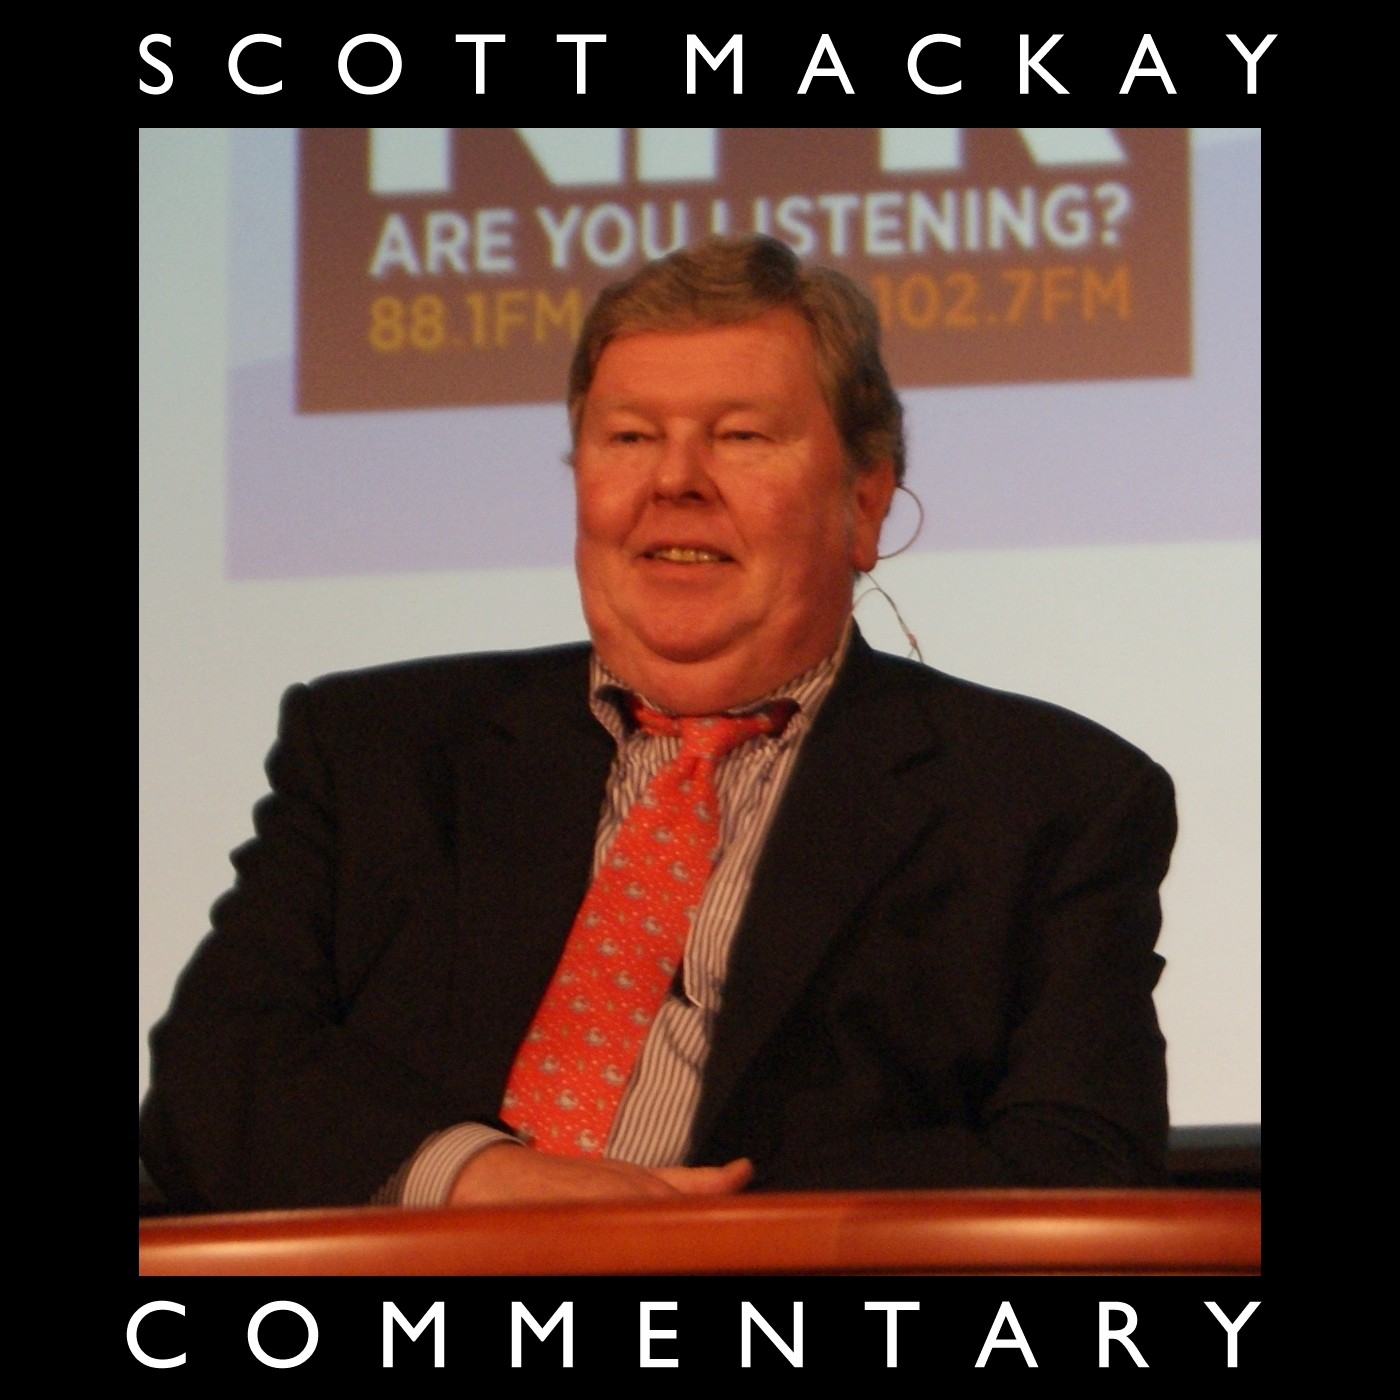 Scott MacKay's Commentary